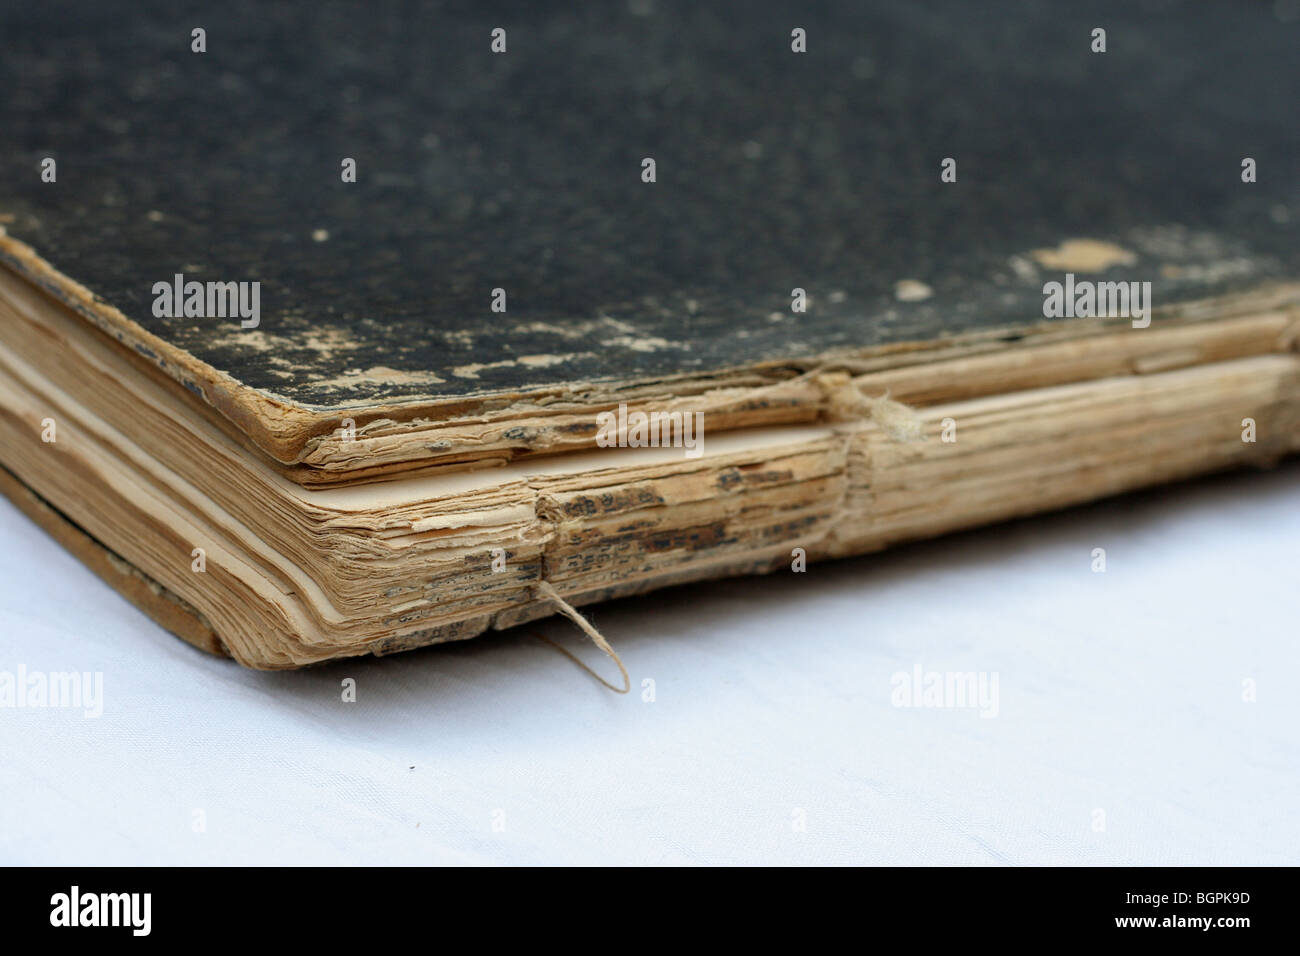 Ancient book - Stock Image